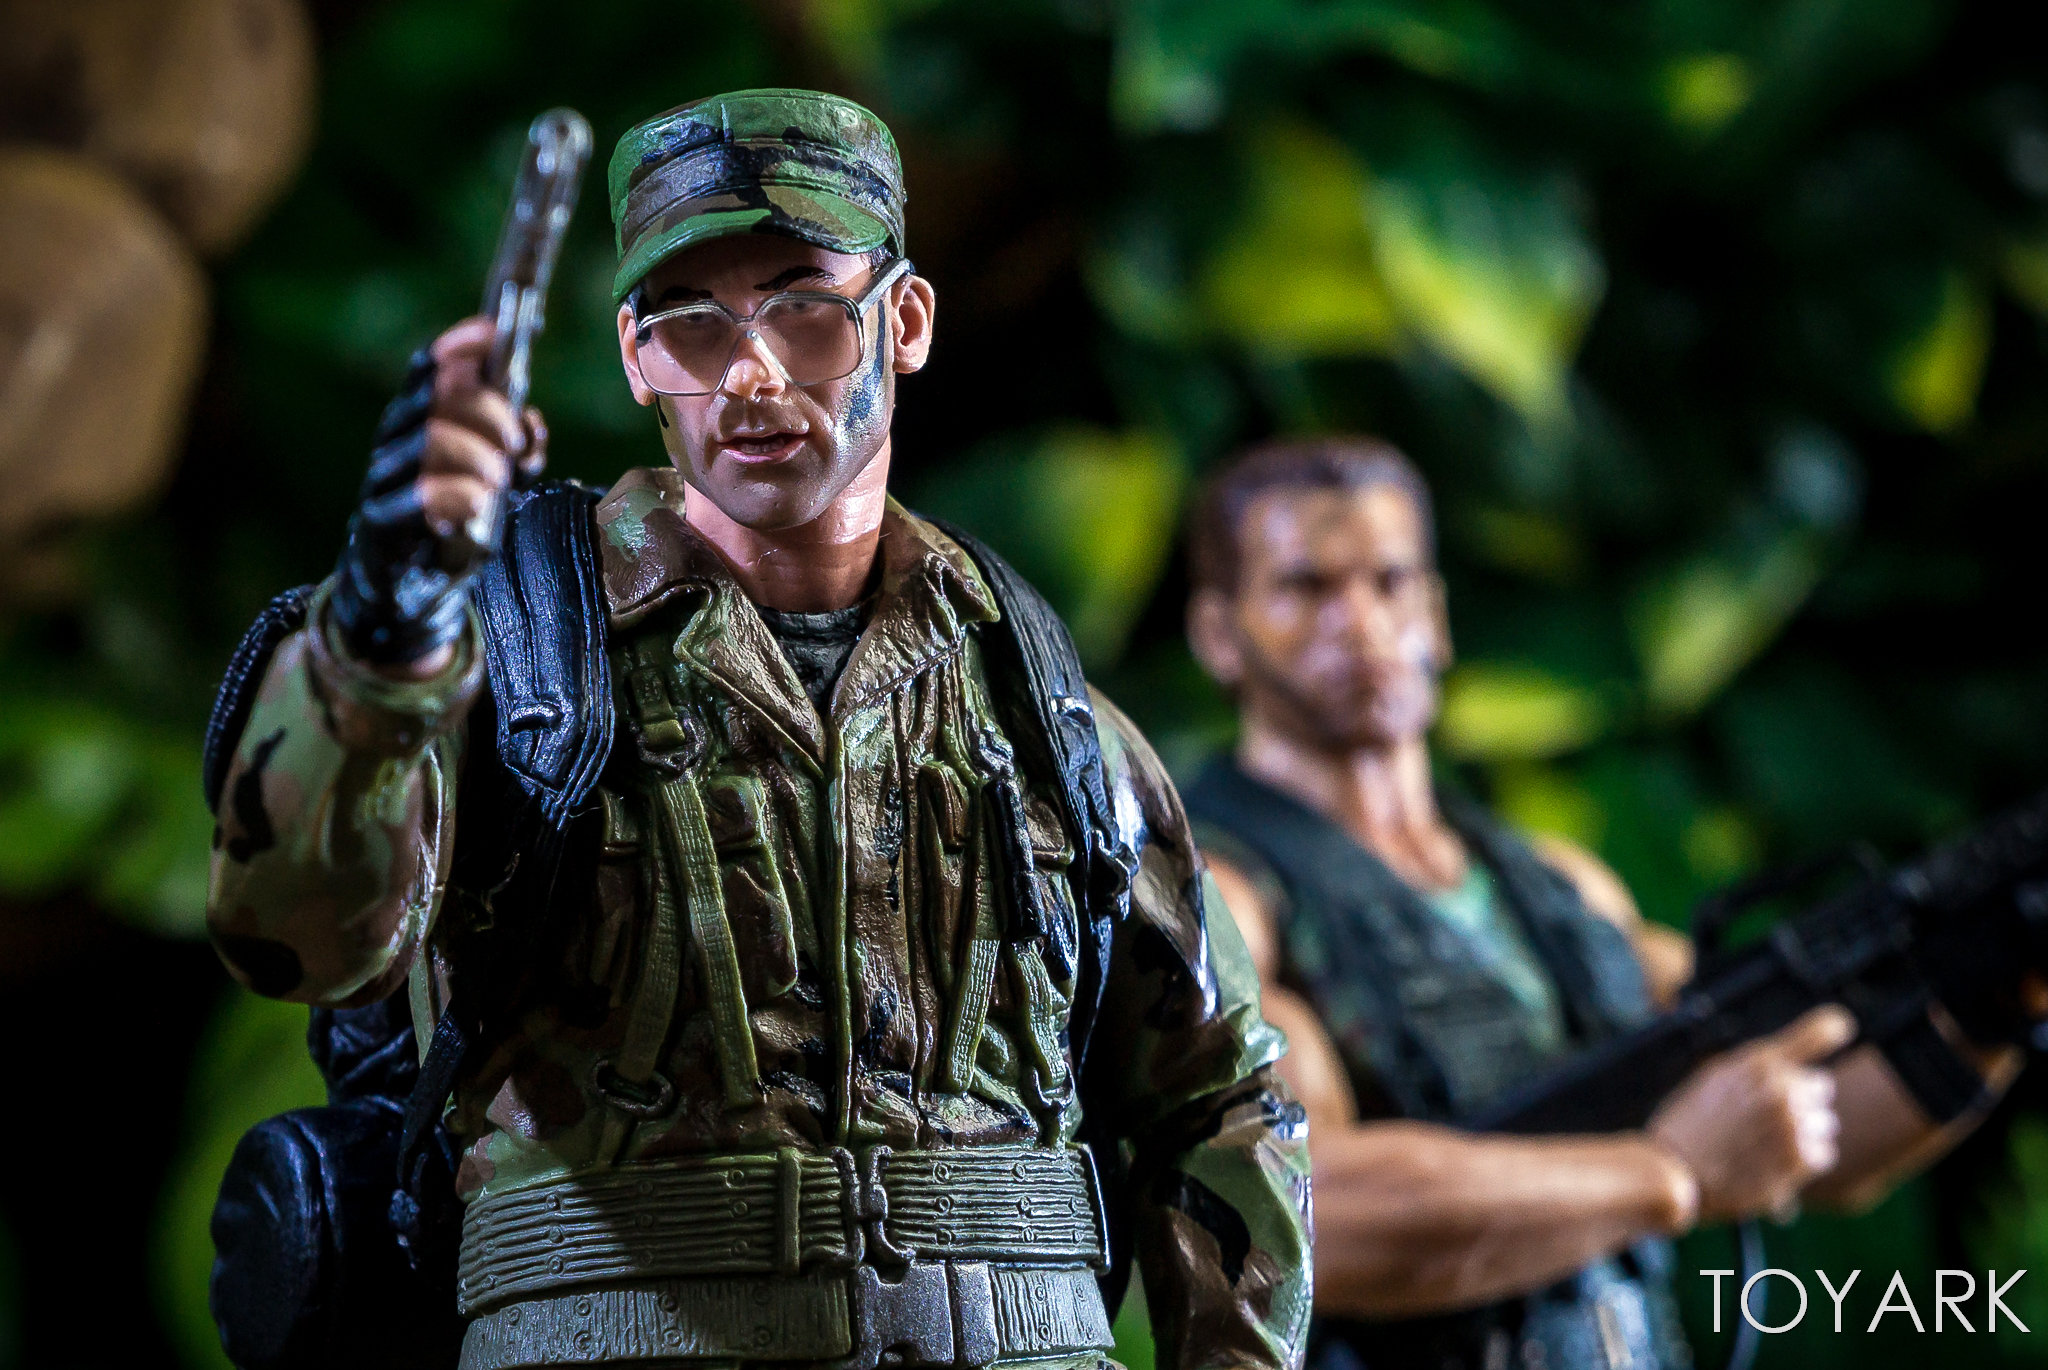 https://news.toyark.com/wp-content/uploads/sites/4/2018/07/NECA-SDCC2018-Predator-Hawkins-035.jpg